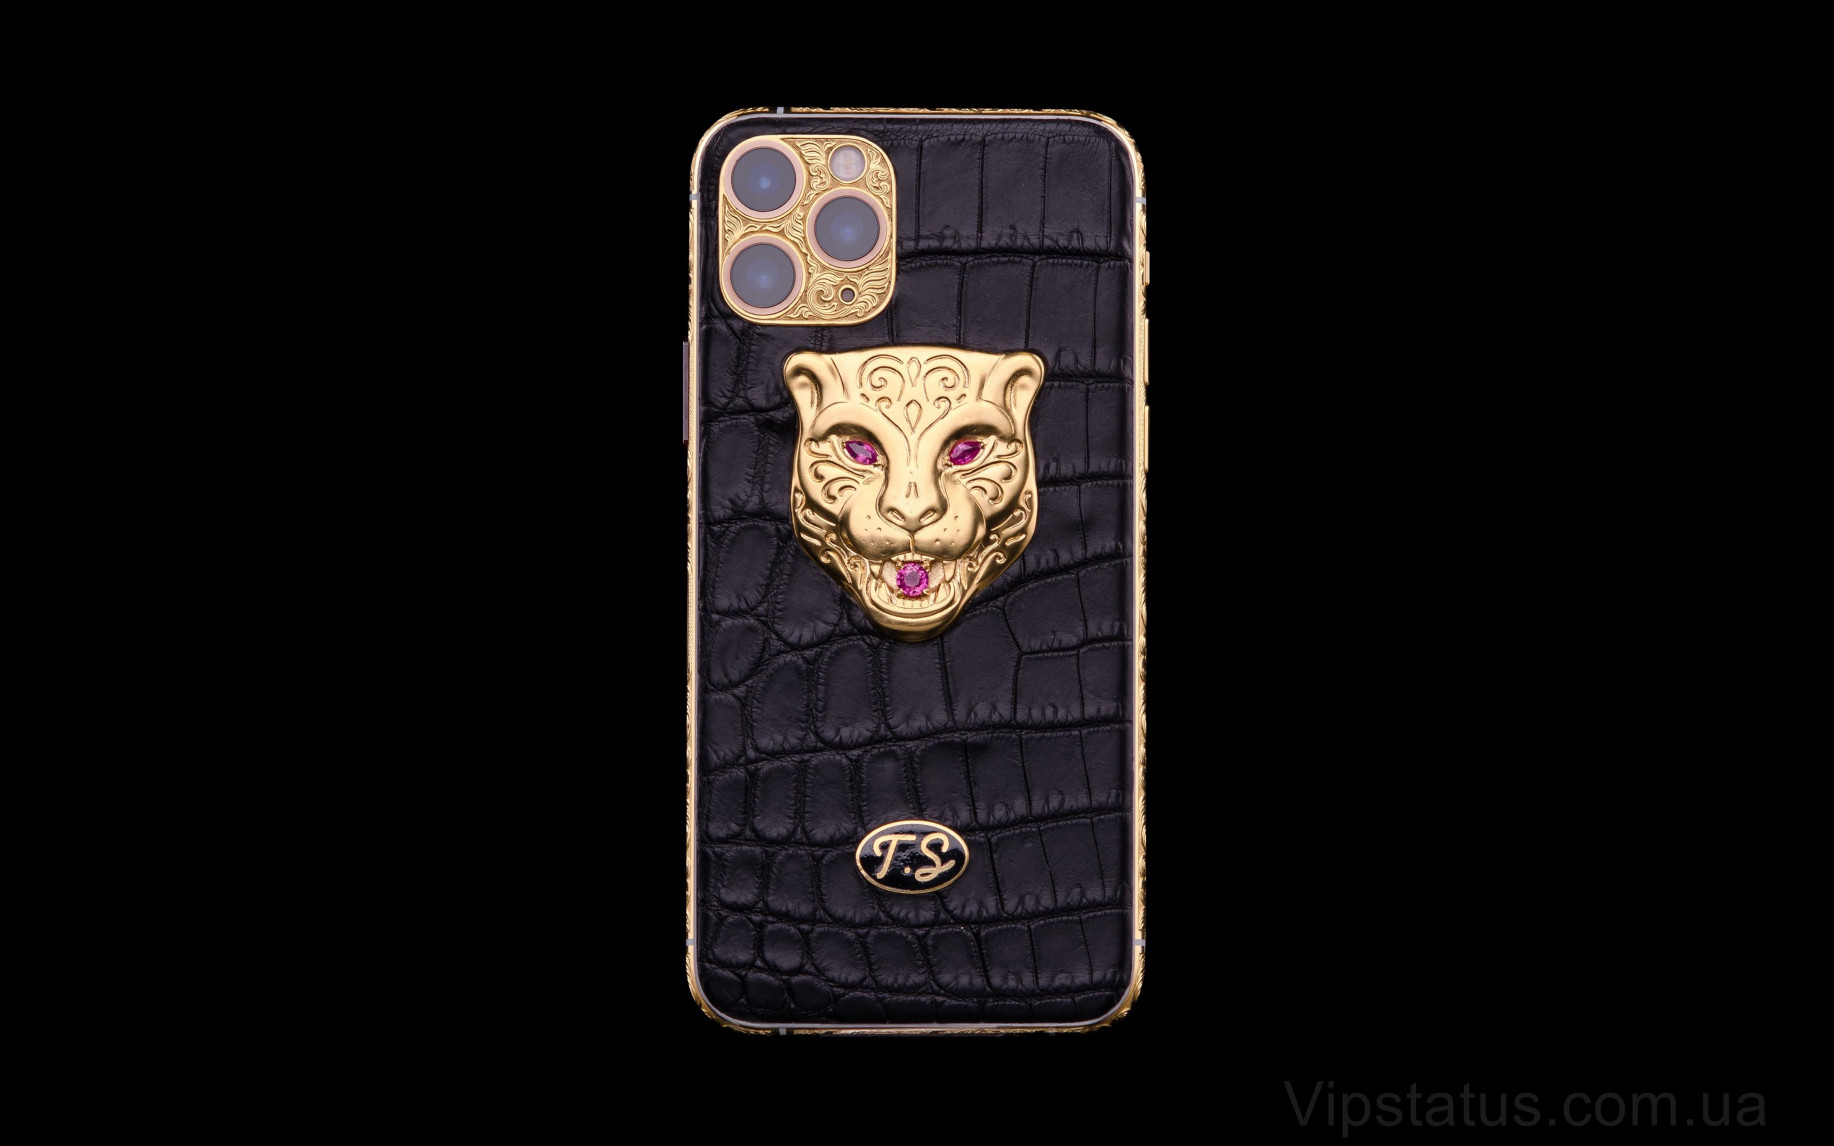 Elite Gucci Tiger IPHONE 11 PRO MAX 512 GB Gucci Tiger IPHONE 11 PRO MAX 512 GB image 3